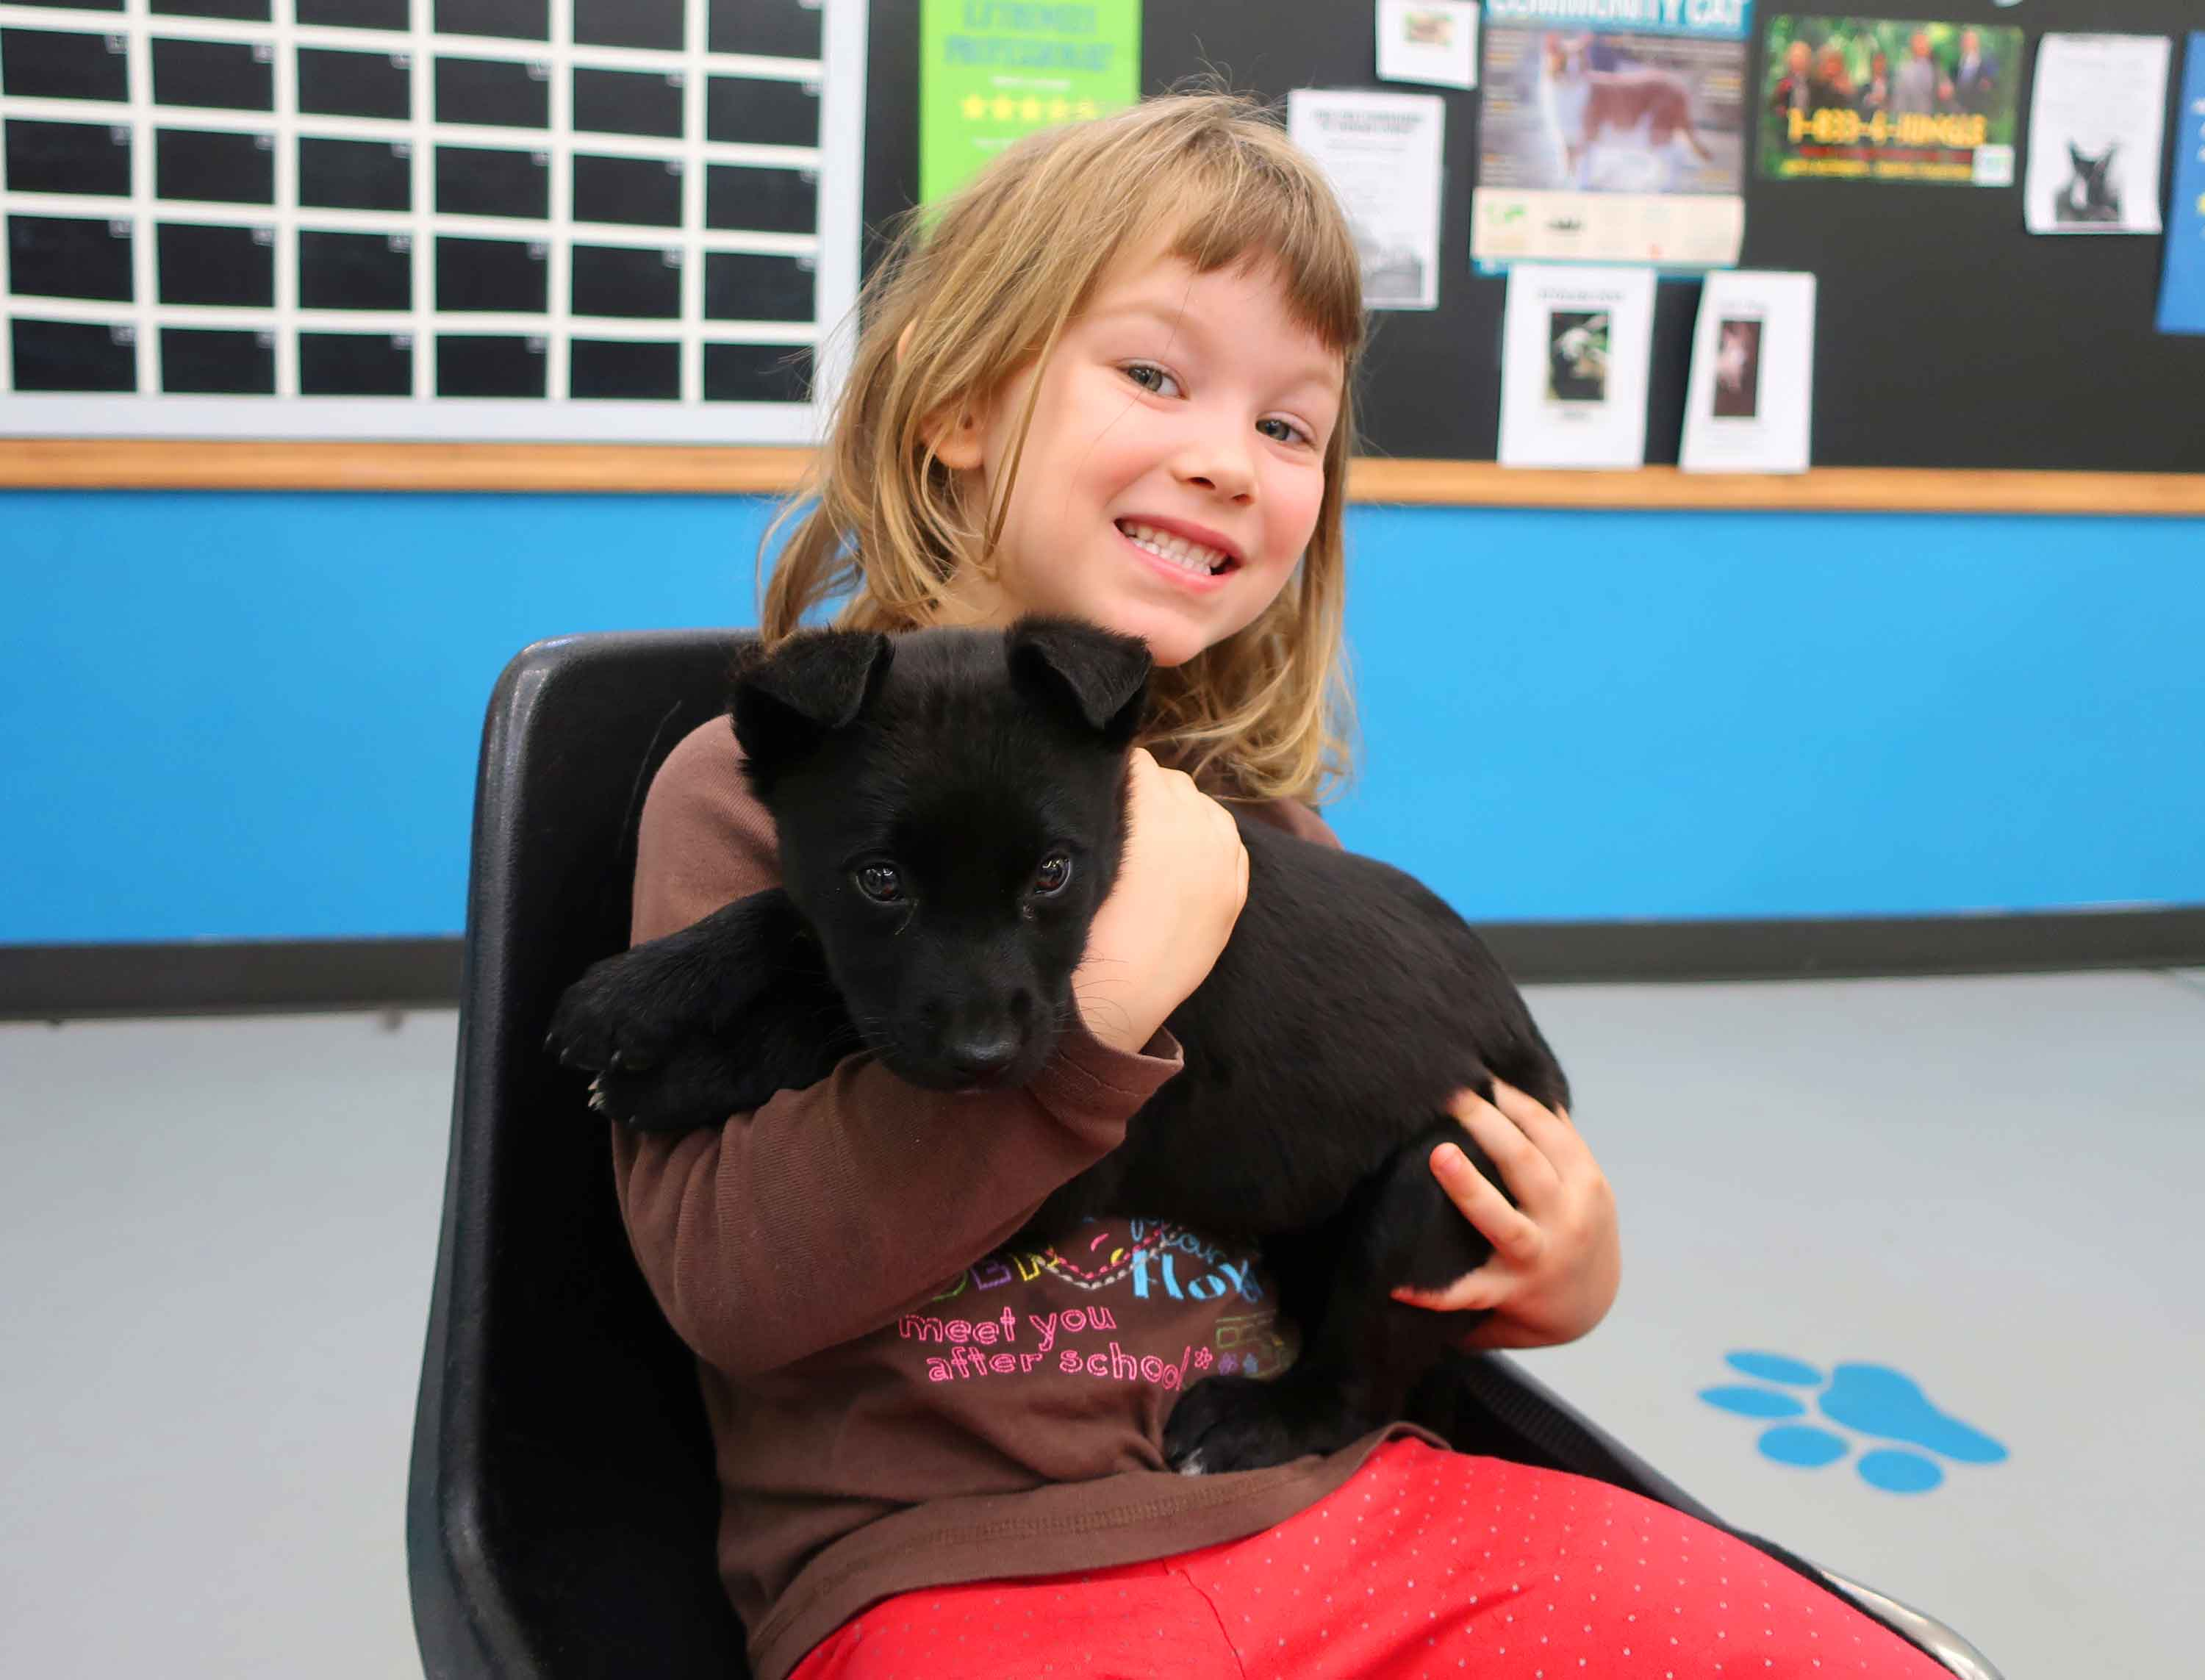 A girl holds a black puppy in her arms and smiles for the camera.